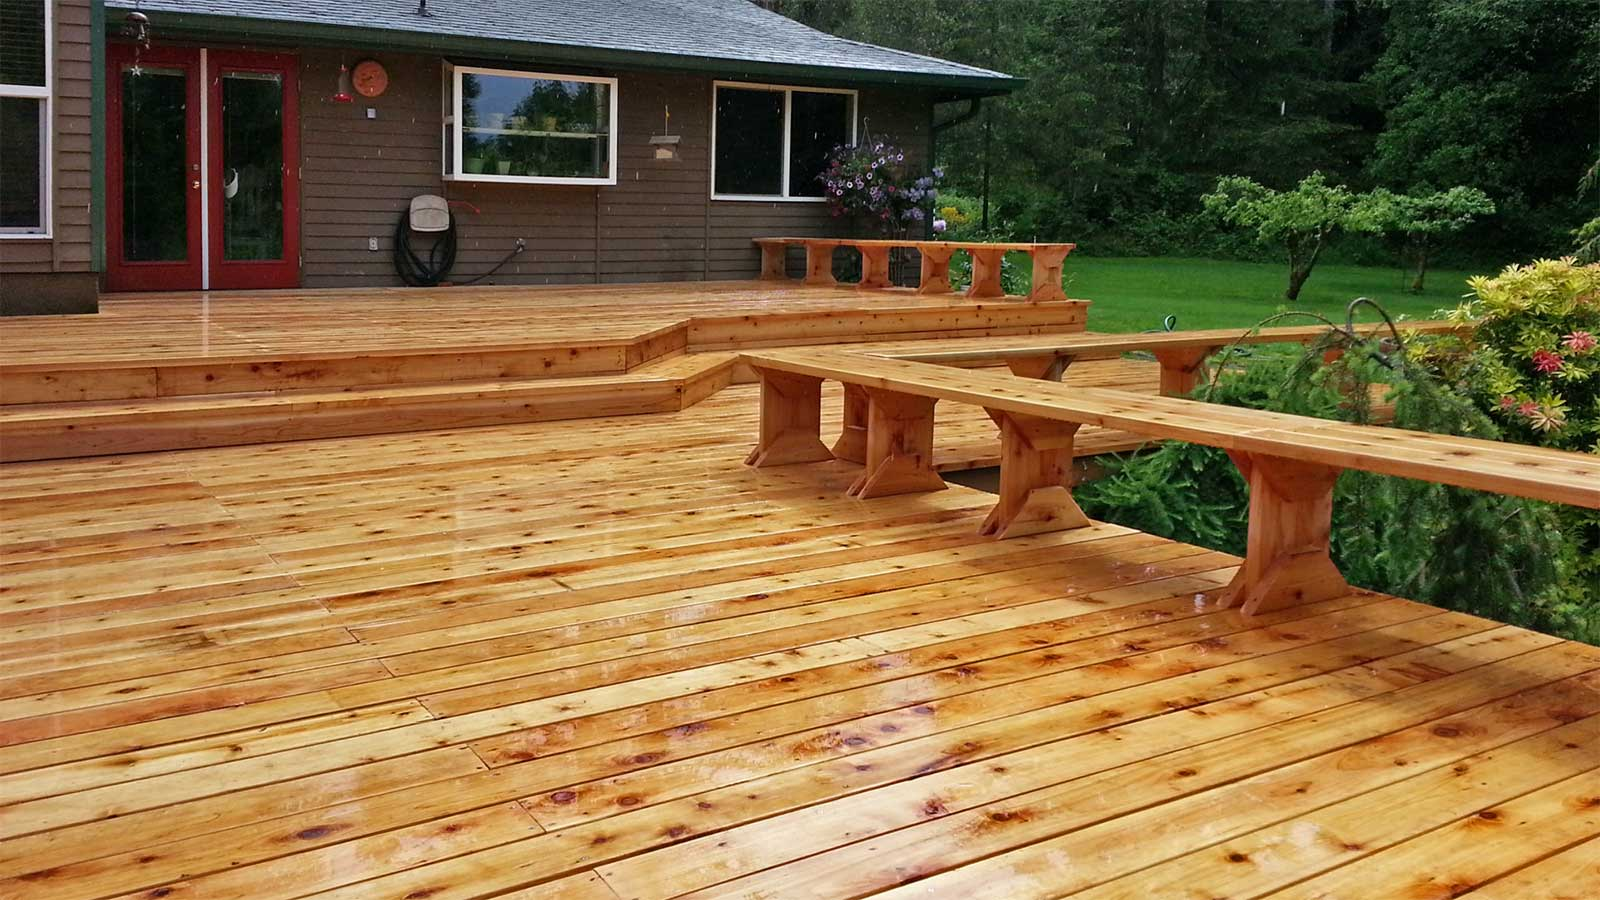 West Olympia Cedar Deck Replacement Ajb Landscaping Amp Fence